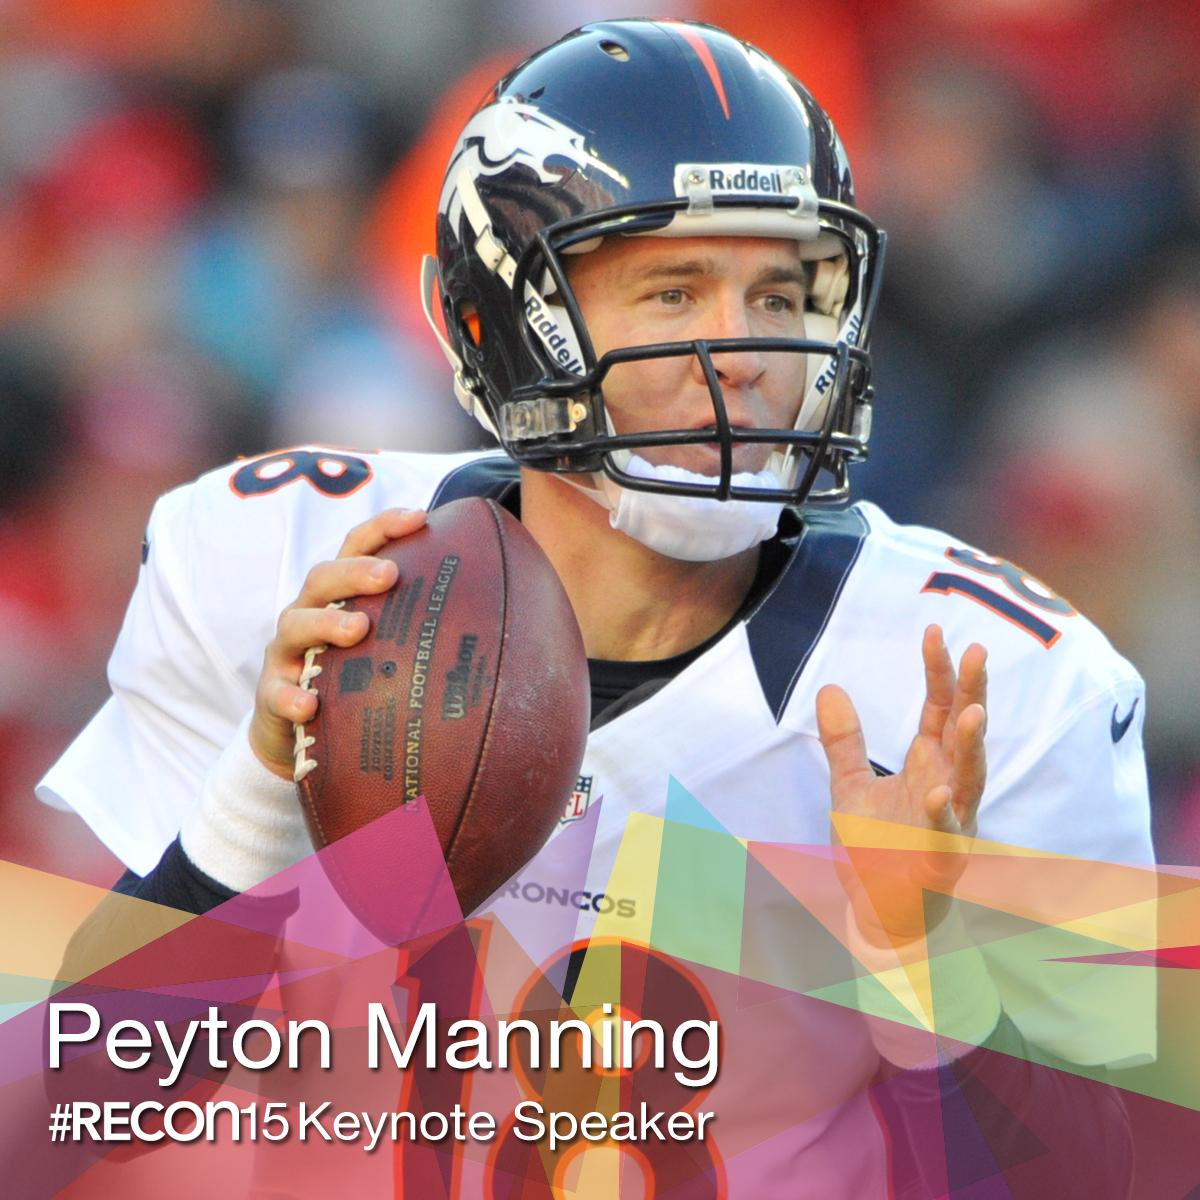 BREAKING NEWS: 5-time @NFL MVP #PeytonManning will give the keynote at #RECon15 http://t.co/fwW4JFvLRu #NFL #CRE http://t.co/zOuAgfX1Az